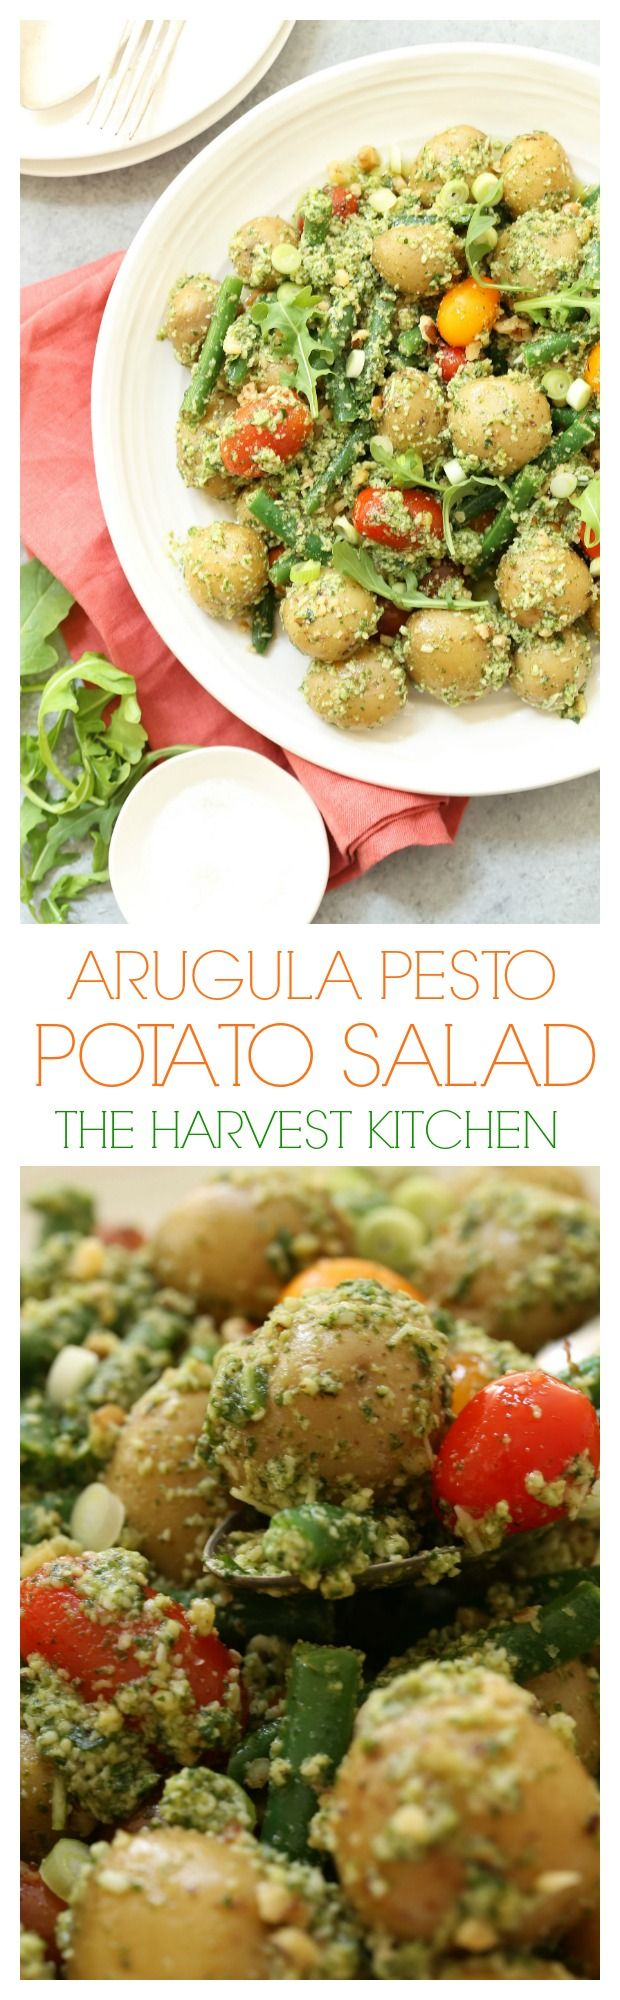 This Arugula Pesto Potato Salad is likely to be one of the easiest potato salads…